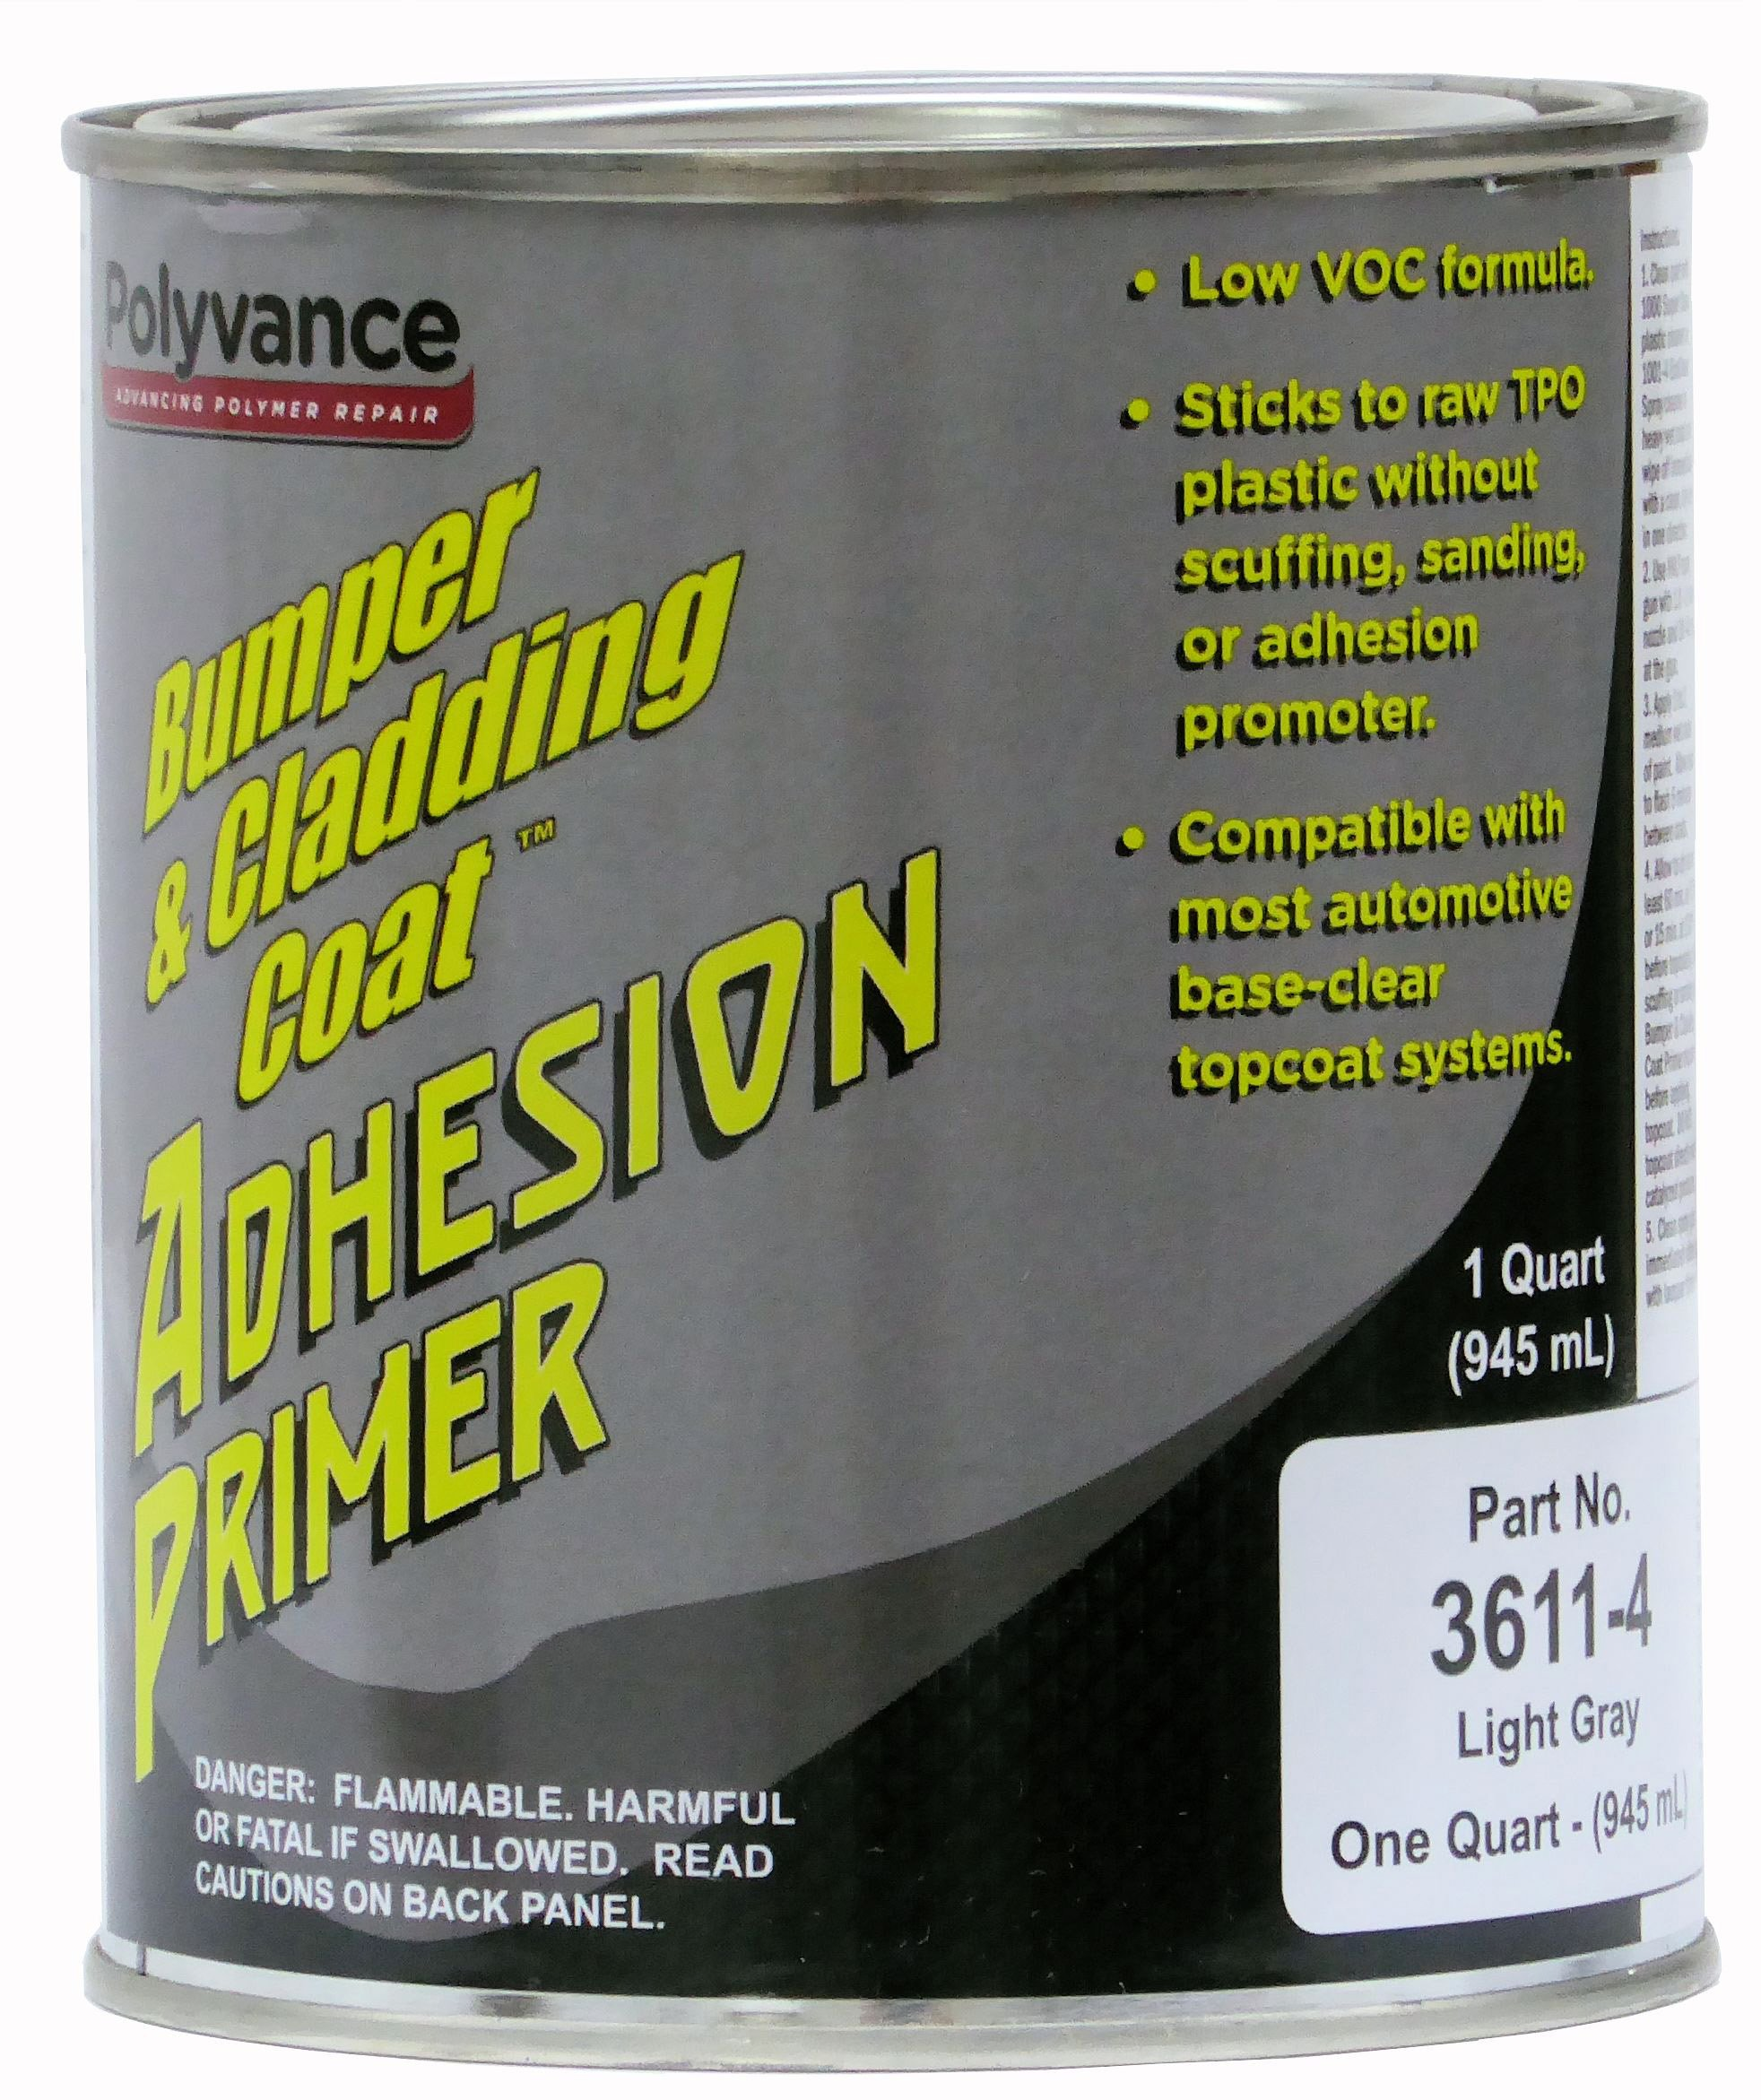 Polyvance Bumper and Cladding Adhesion Primer, Low VOC, Light Gray, Quart